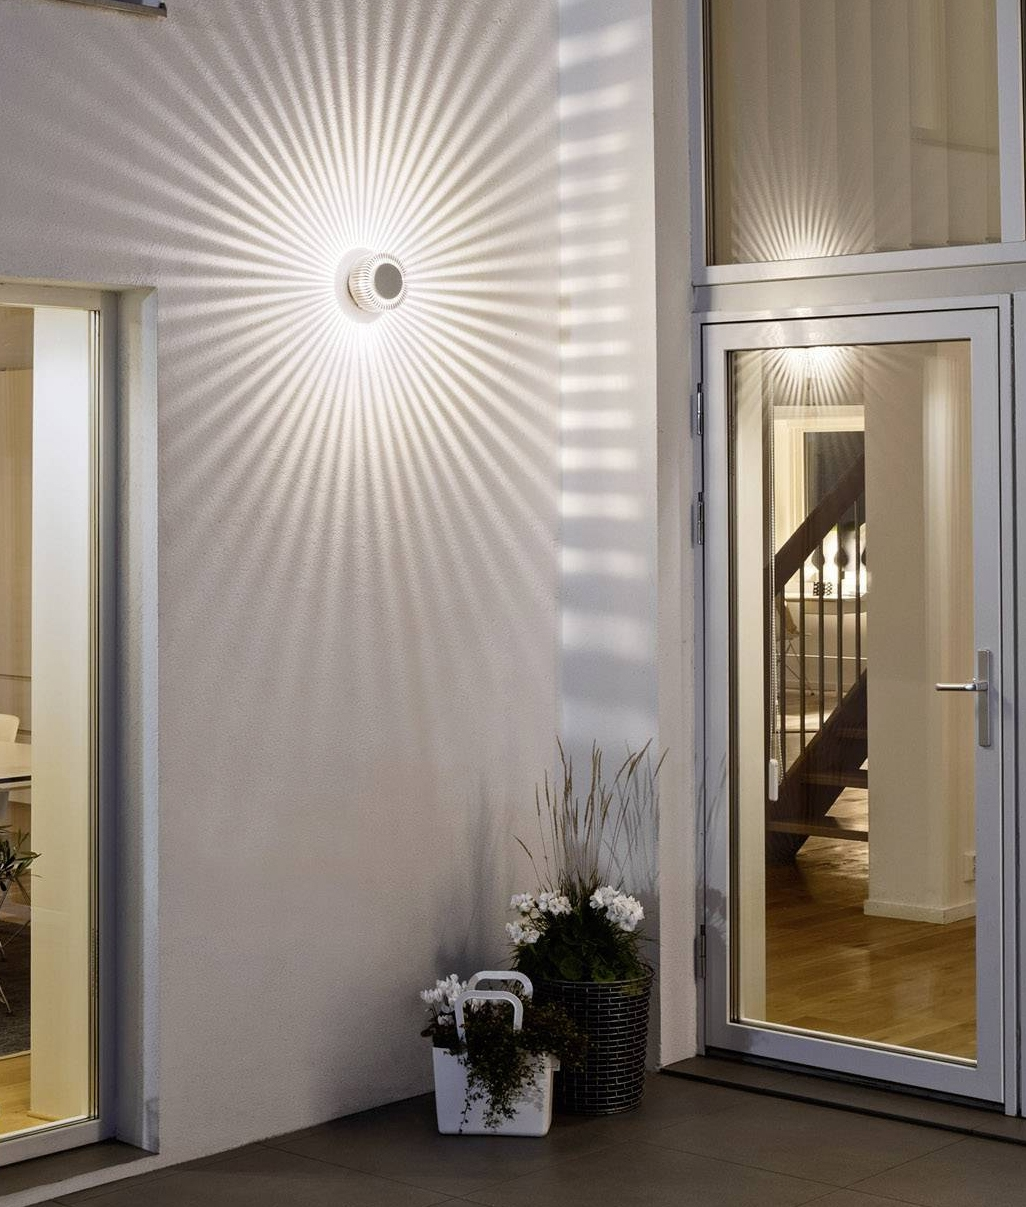 Wall Mounted Decorative Led Light Polar Distribution Wall Washer With Star Effect